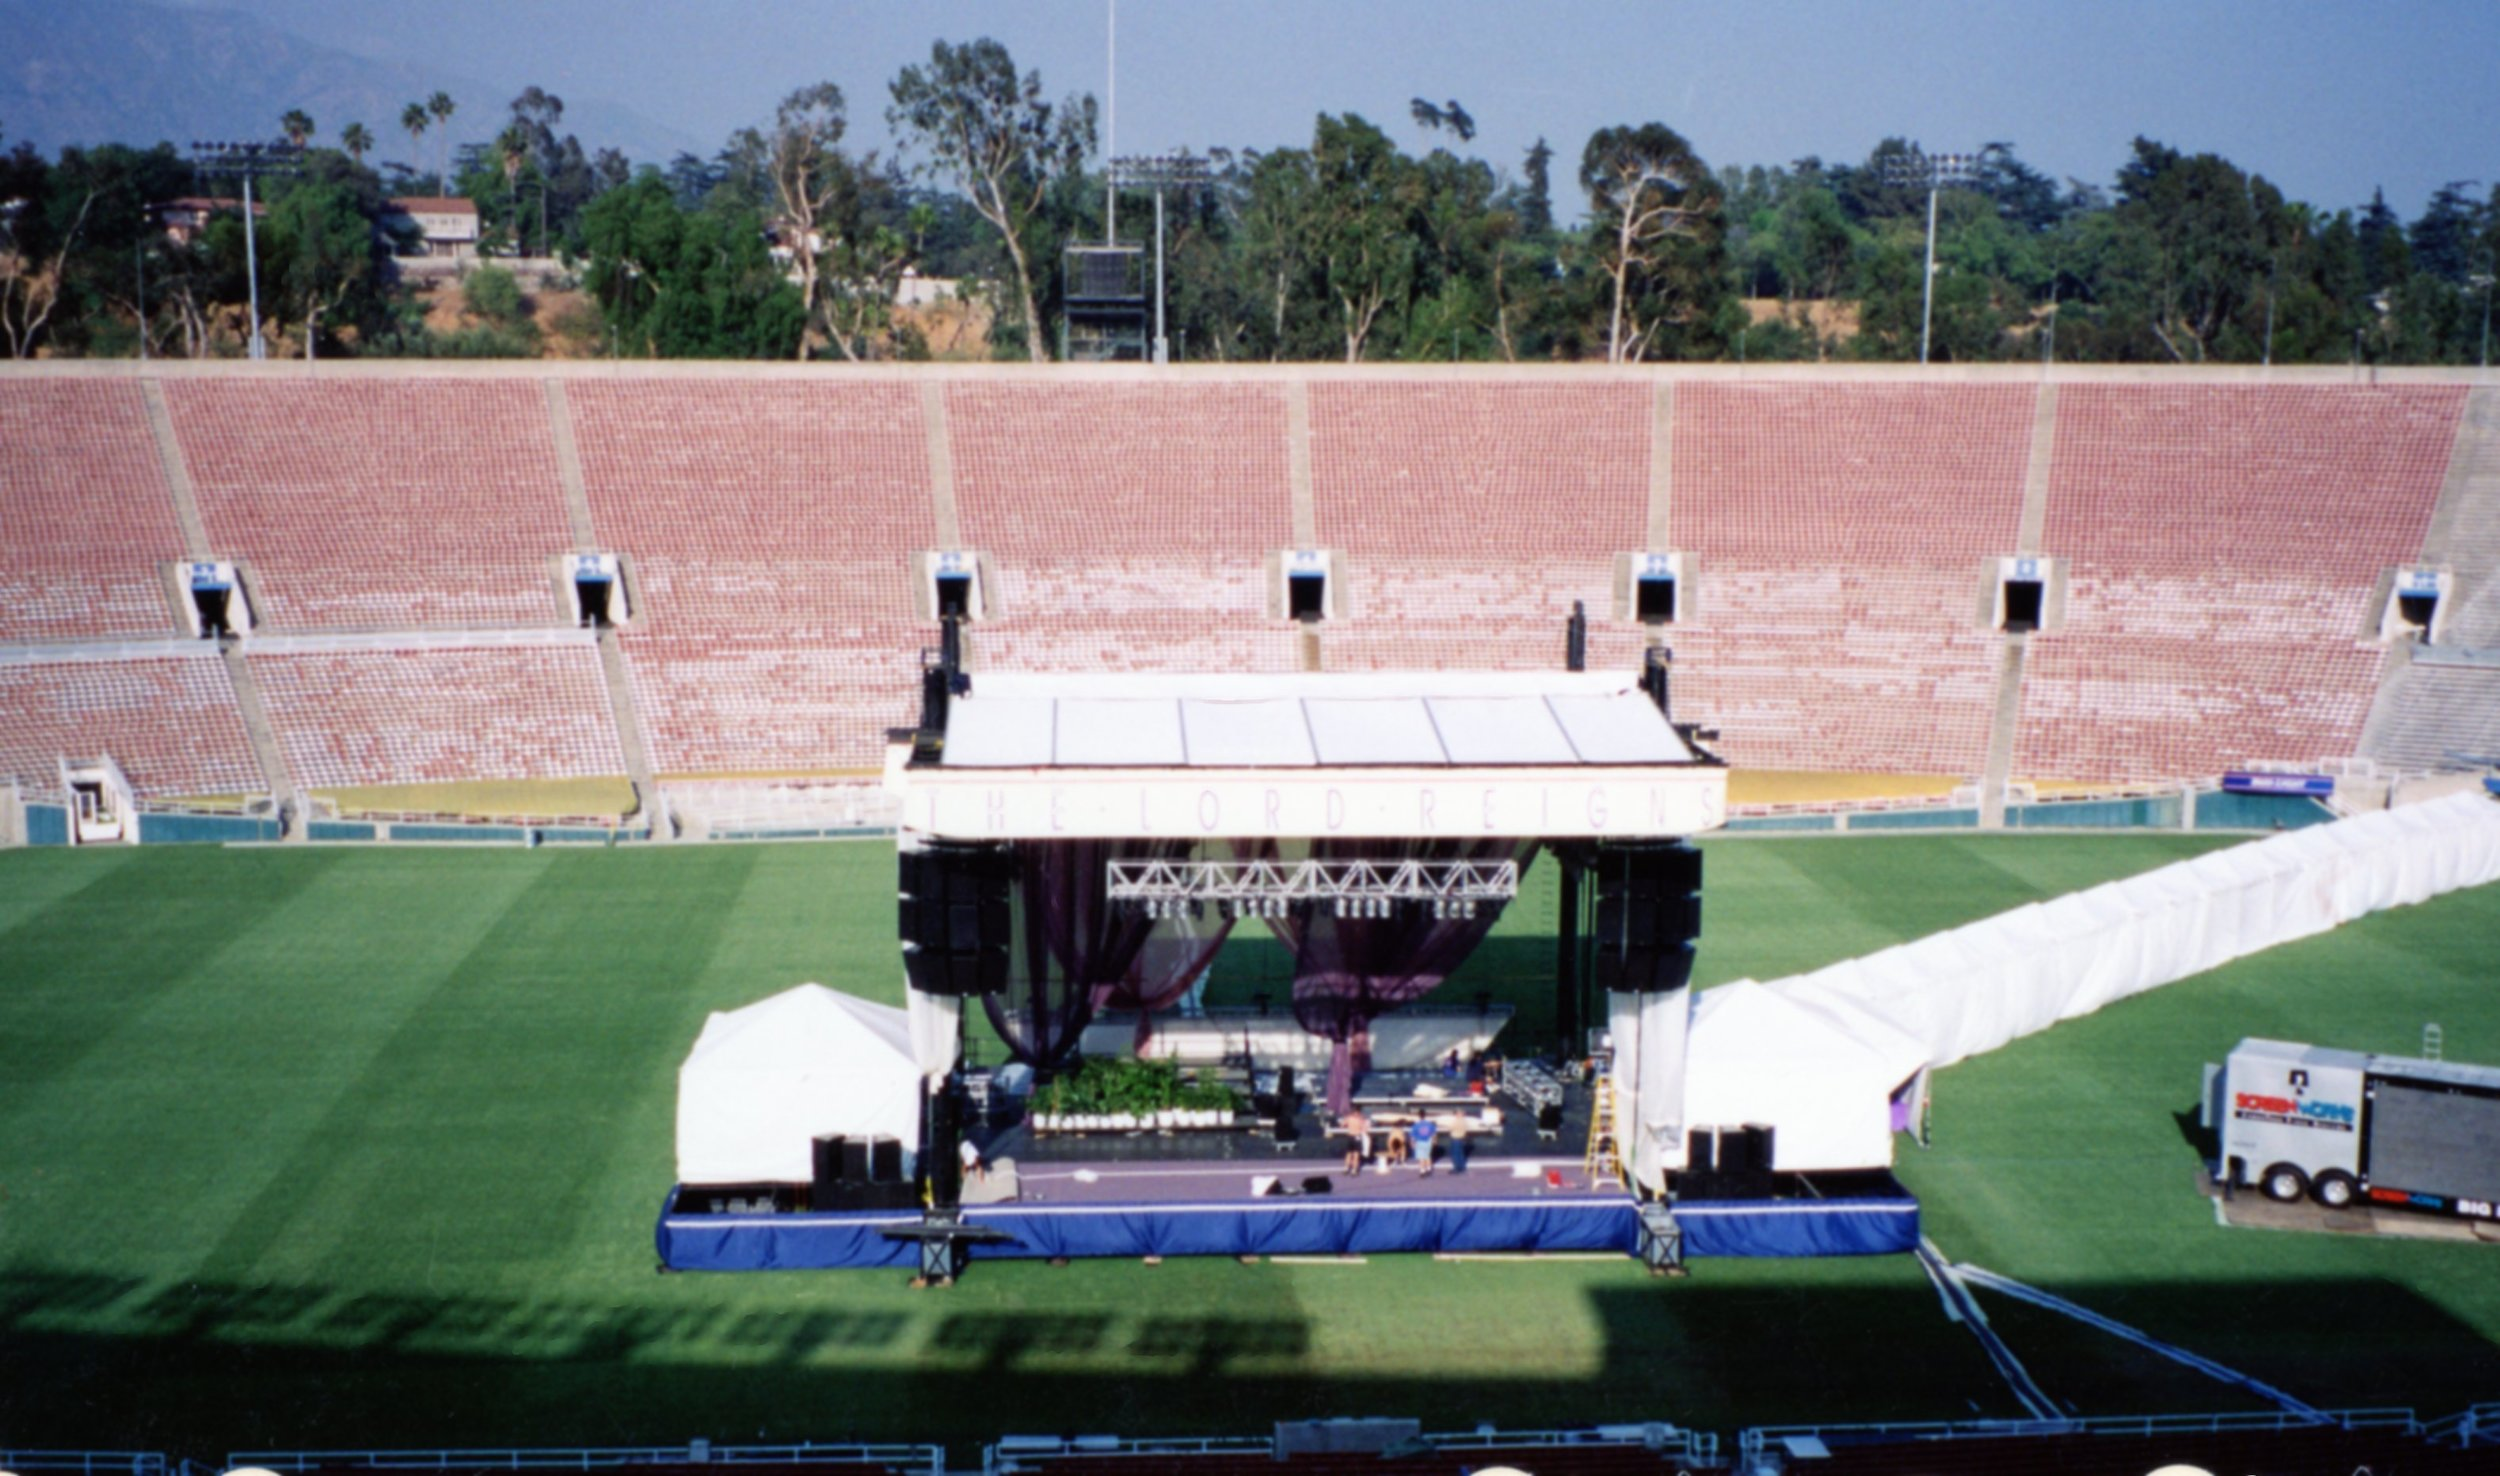 Stage Set-up at the Rose Bowl